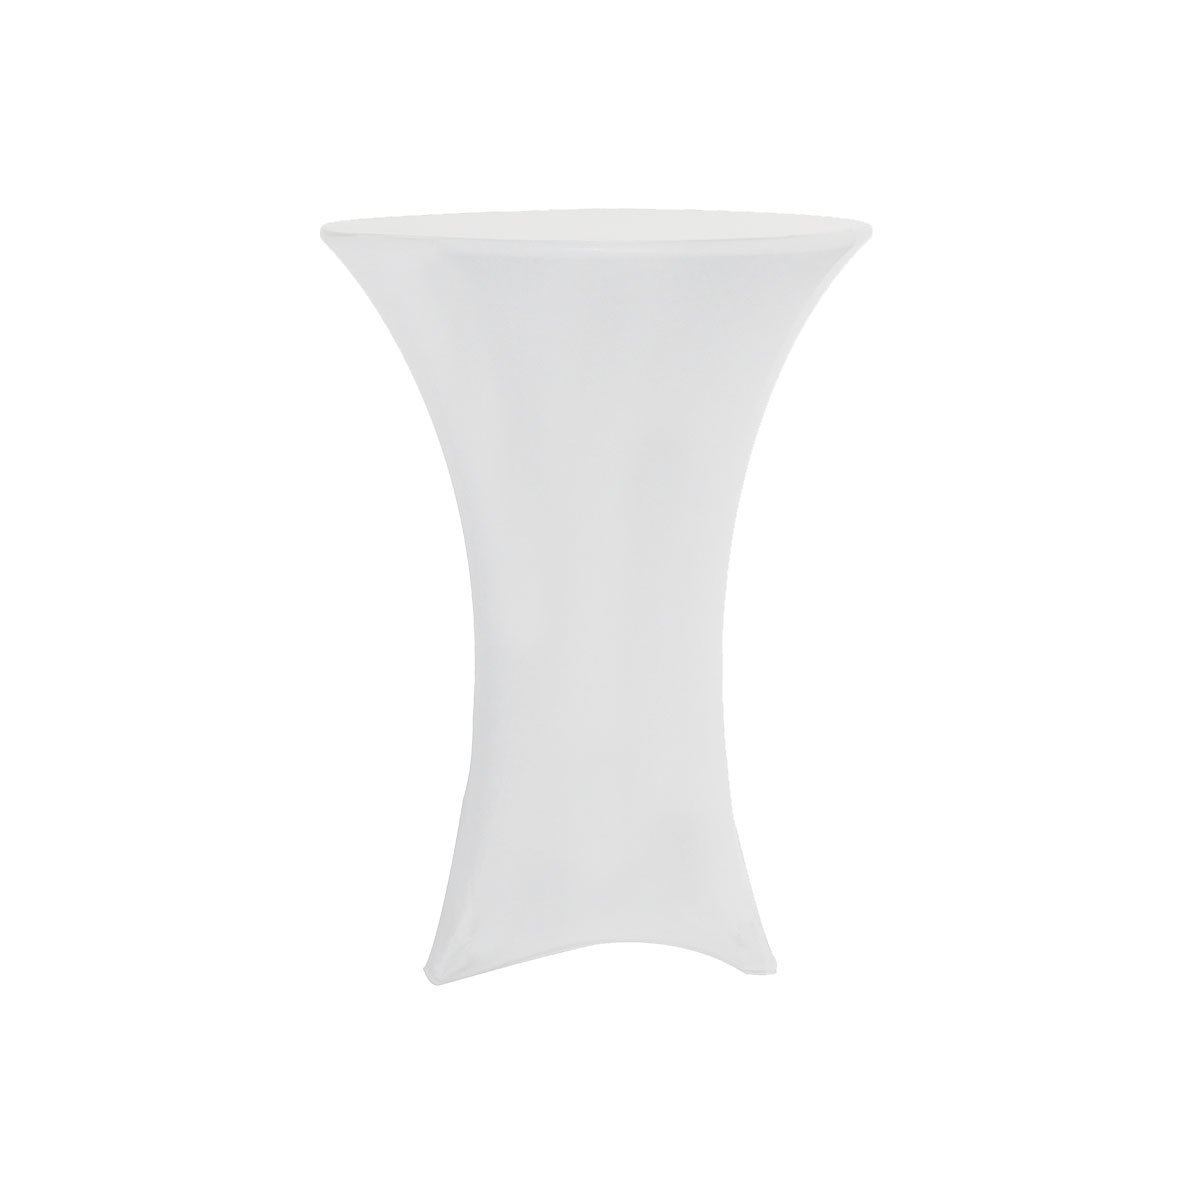 Reliancer 2 Pack 30inch Highboy Cocktail Round Spandex Table Cover Four-way Tight Fitted Stretch Tablecloth Table Cloth Outdoor Party DJ Tradeshows Banquet Vendors Weddings(White, 30''X42'')